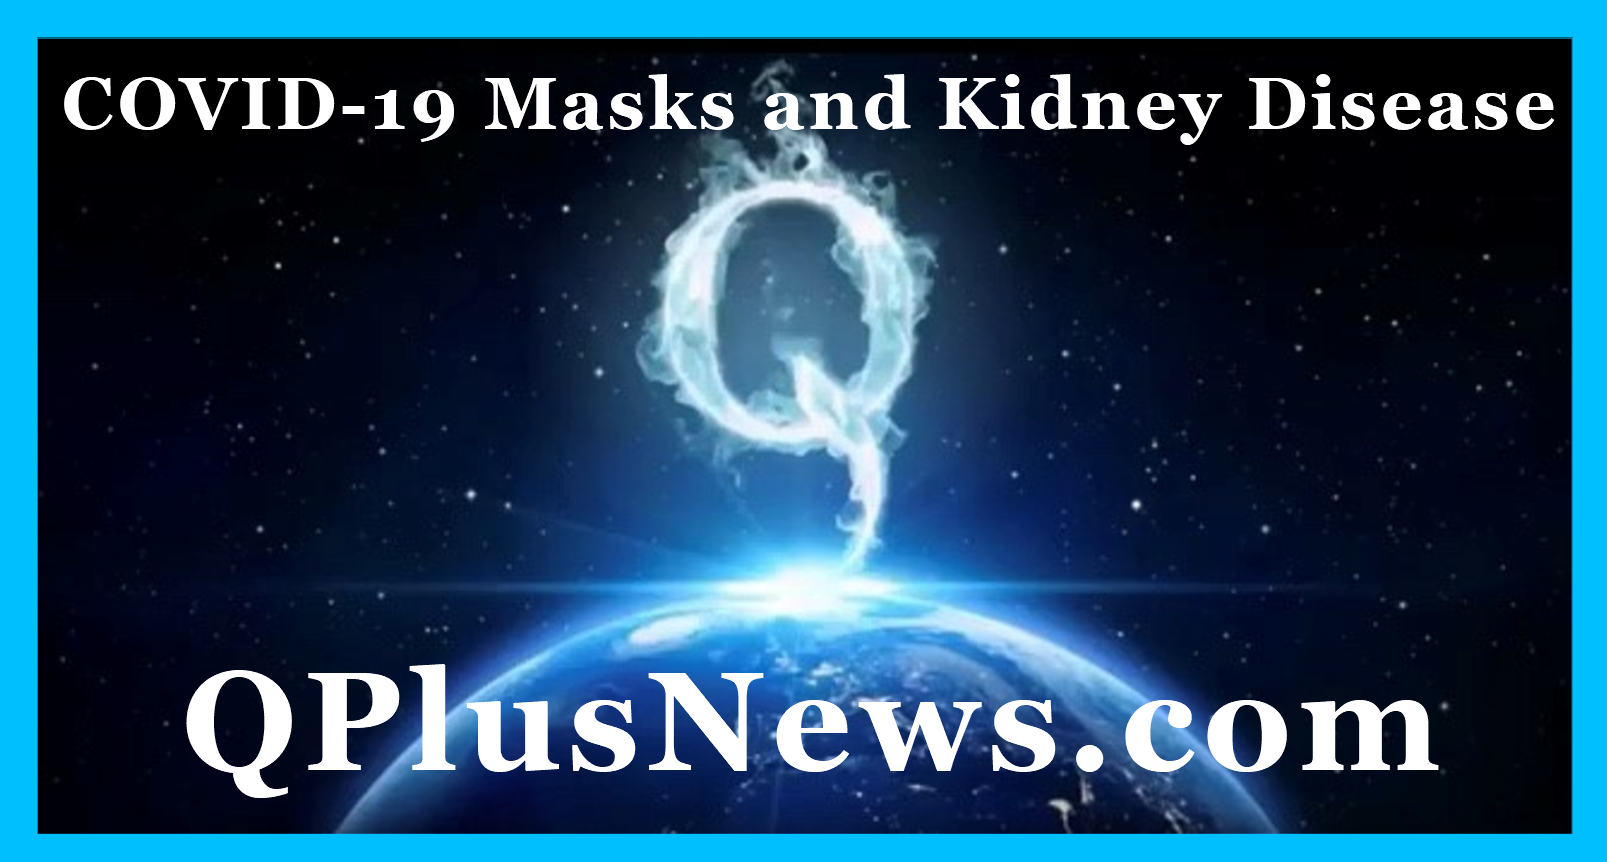 COVID-19 Masks And Kidney Disease